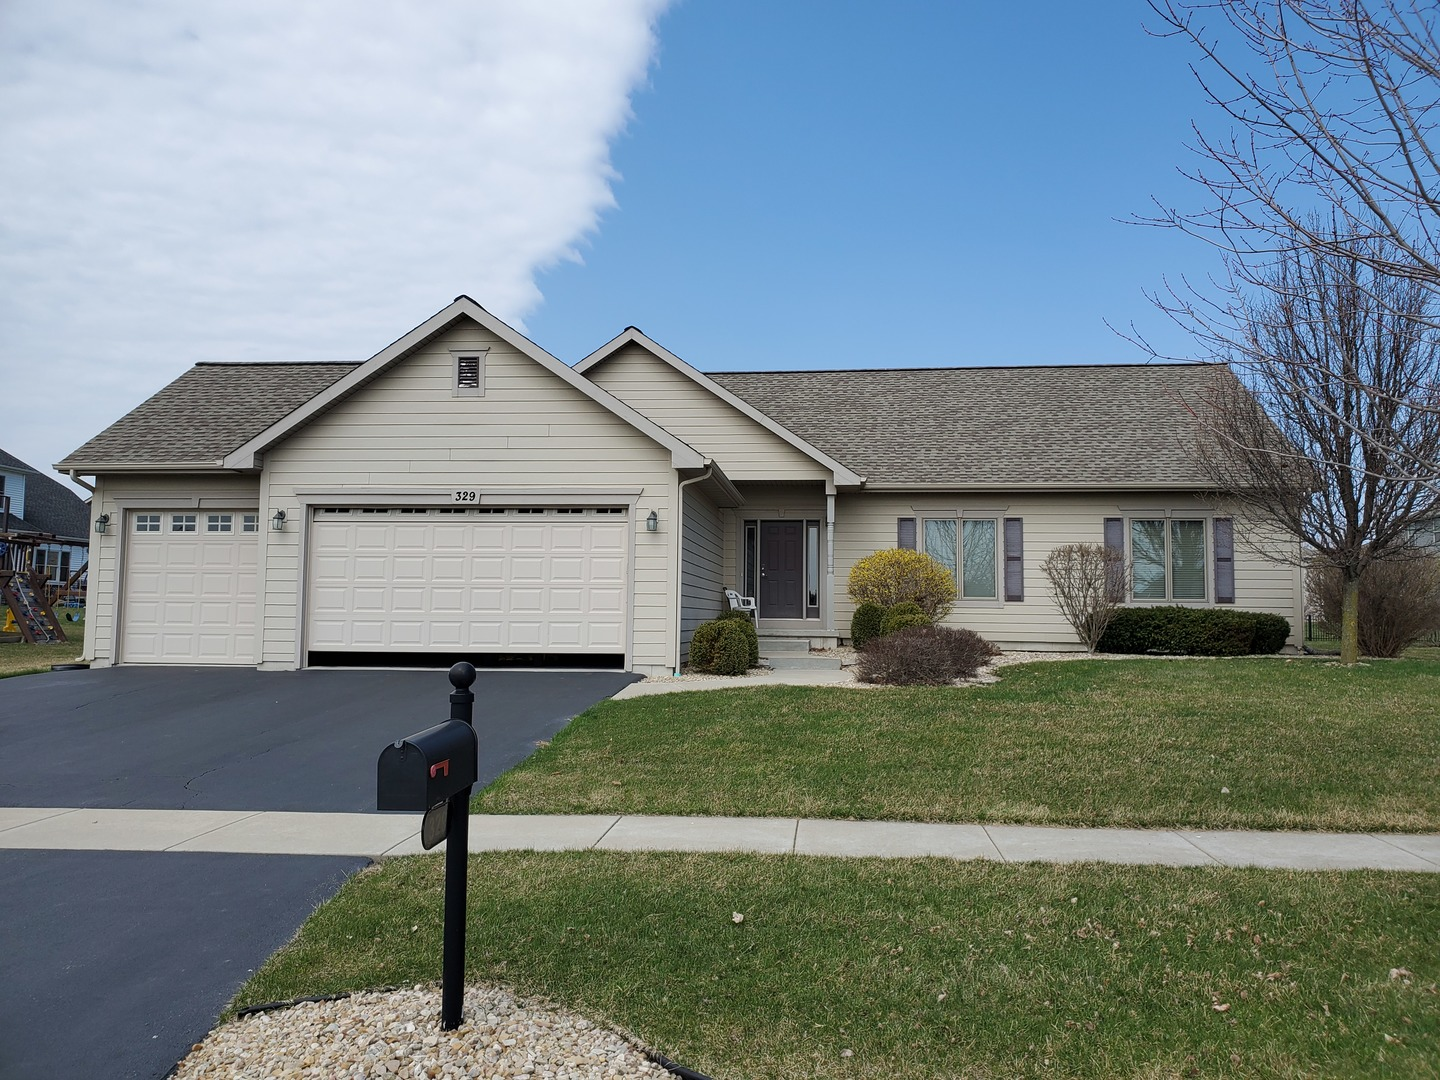 Photo for 329 White Street, Sycamore, IL 60178 (MLS # 10683140)